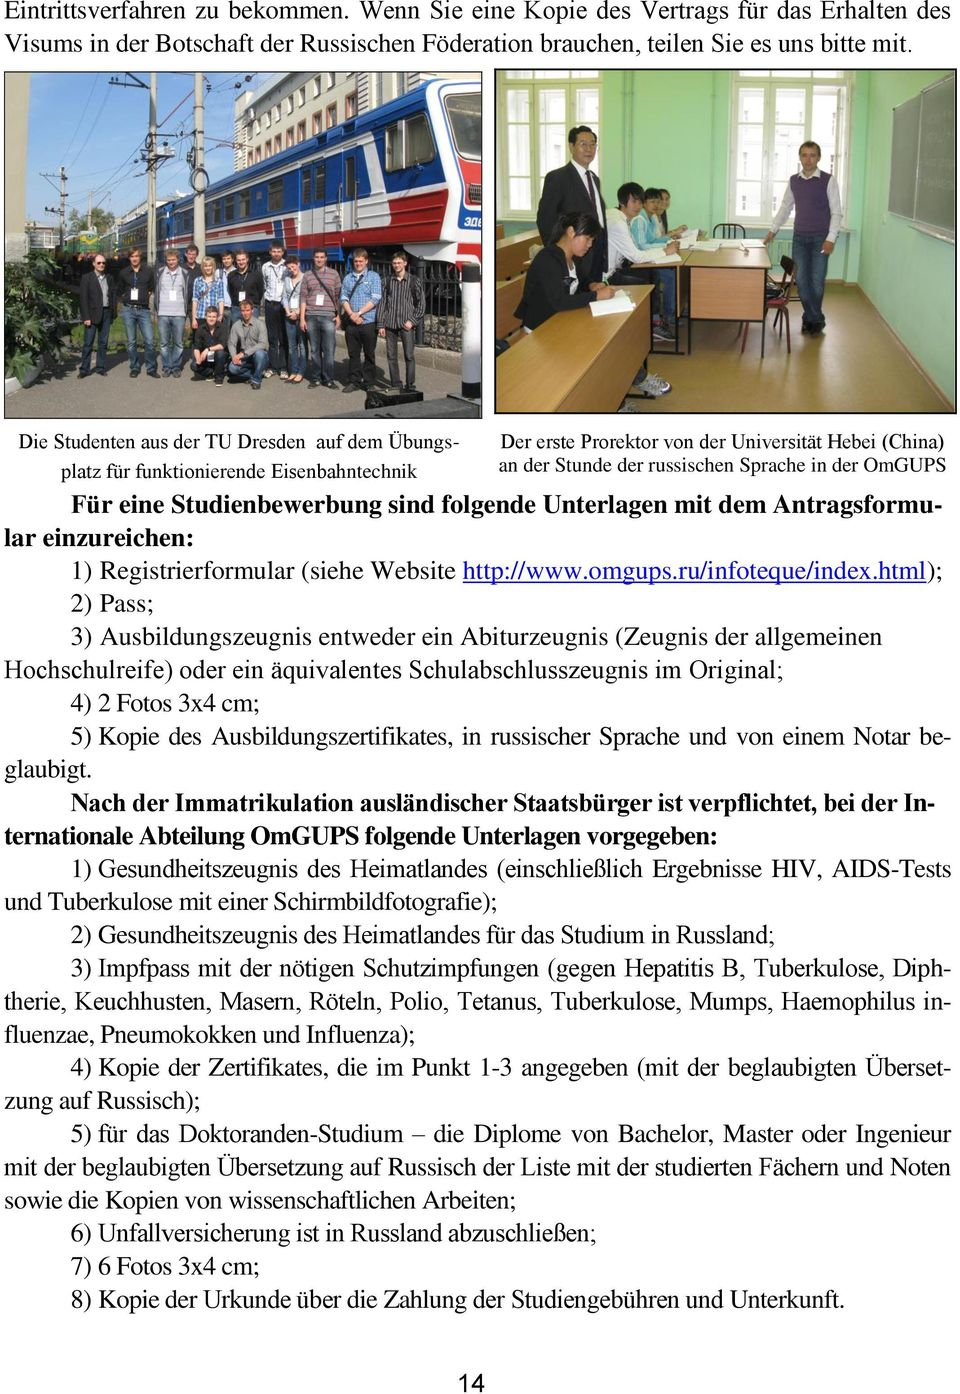 eine Studienbewerbung sind folgende Unterlagen mit dem Antragsformular einzureichen: 1) Registrierformular (siehe Website http://www.omgups.ru/infoteque/index.